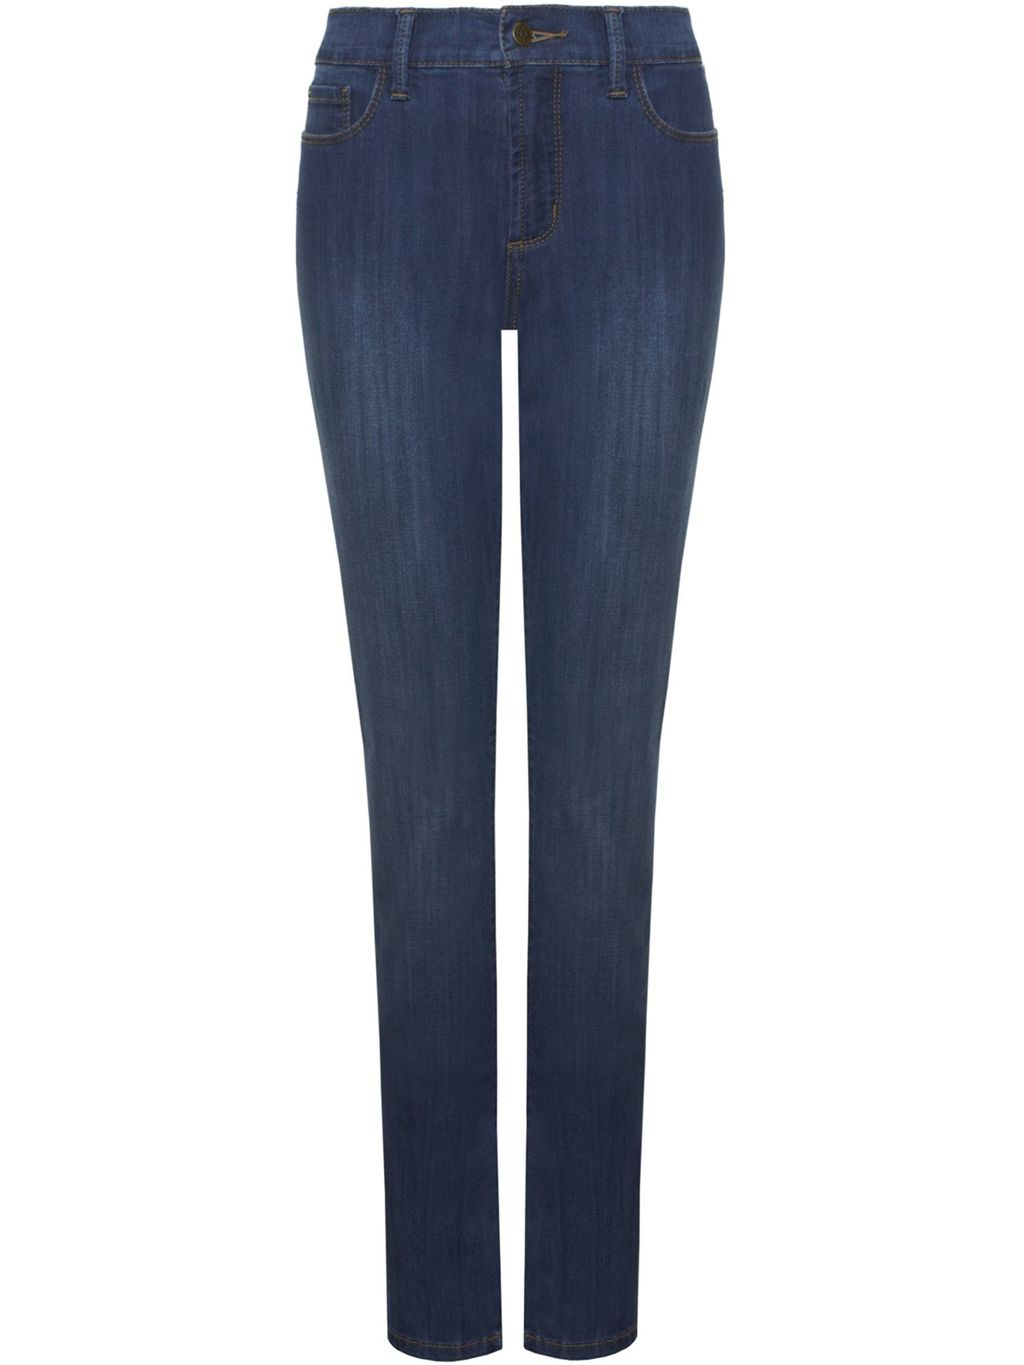 Samantha Slim, Blue - length: standard; pattern: plain; waist: high rise; style: slim leg; predominant colour: navy; occasions: casual; fibres: cotton - stretch; jeans detail: dark wash; texture group: denim; pattern type: fabric; season: s/s 2016